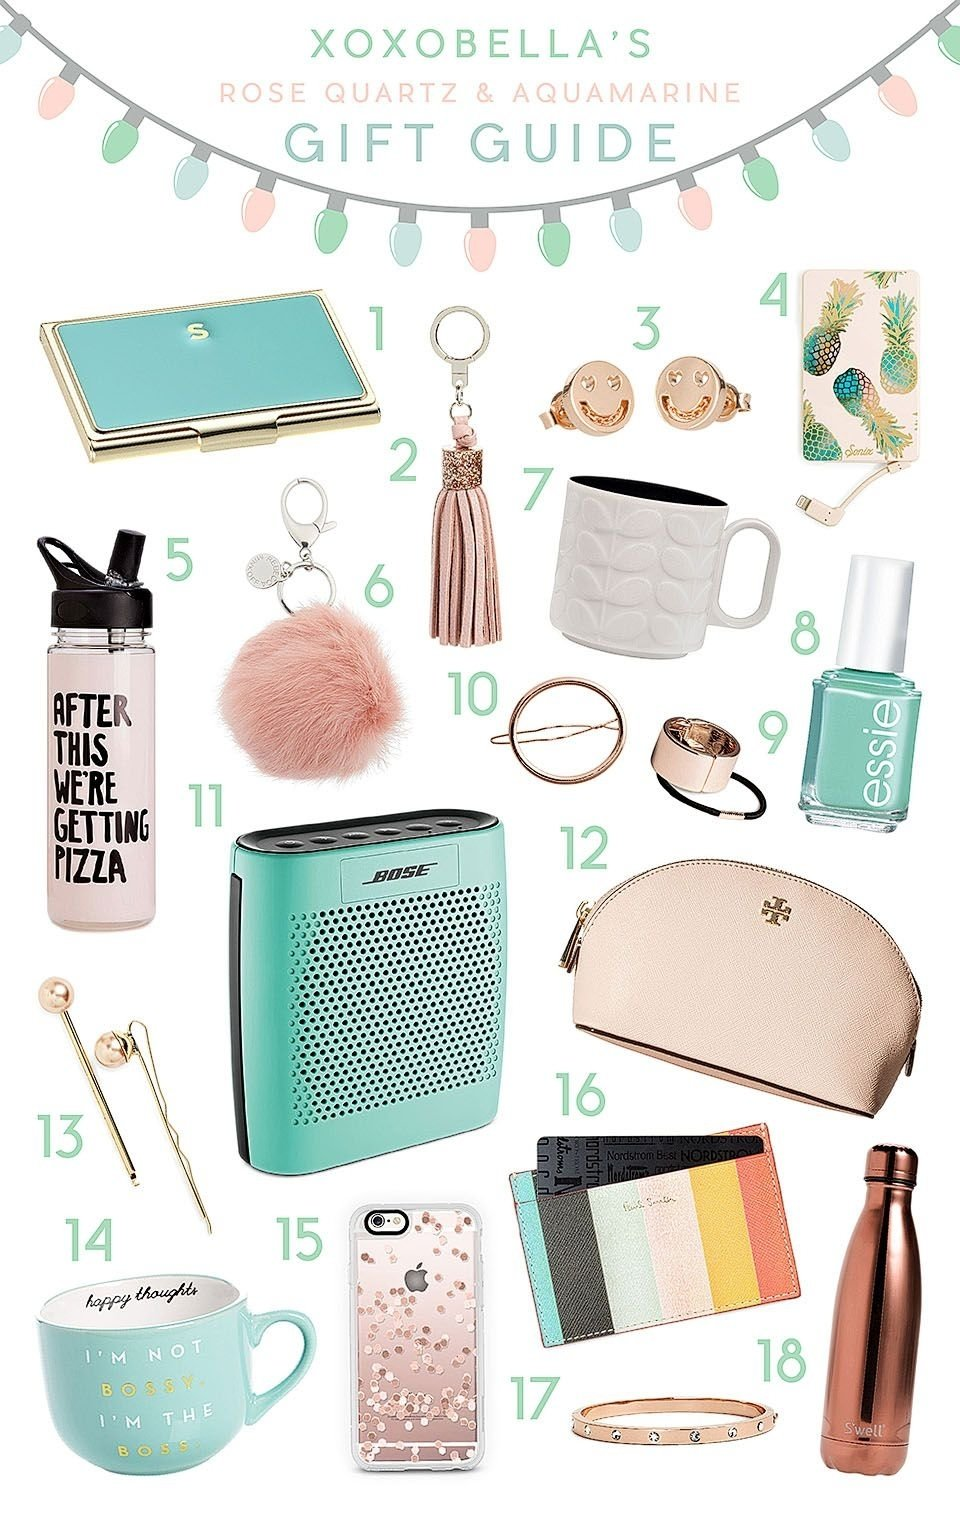 10 Wonderful Birthday Present Ideas For Her rose quartz aquamarine gift guide holiday gift guide aqua and rose 1 2020